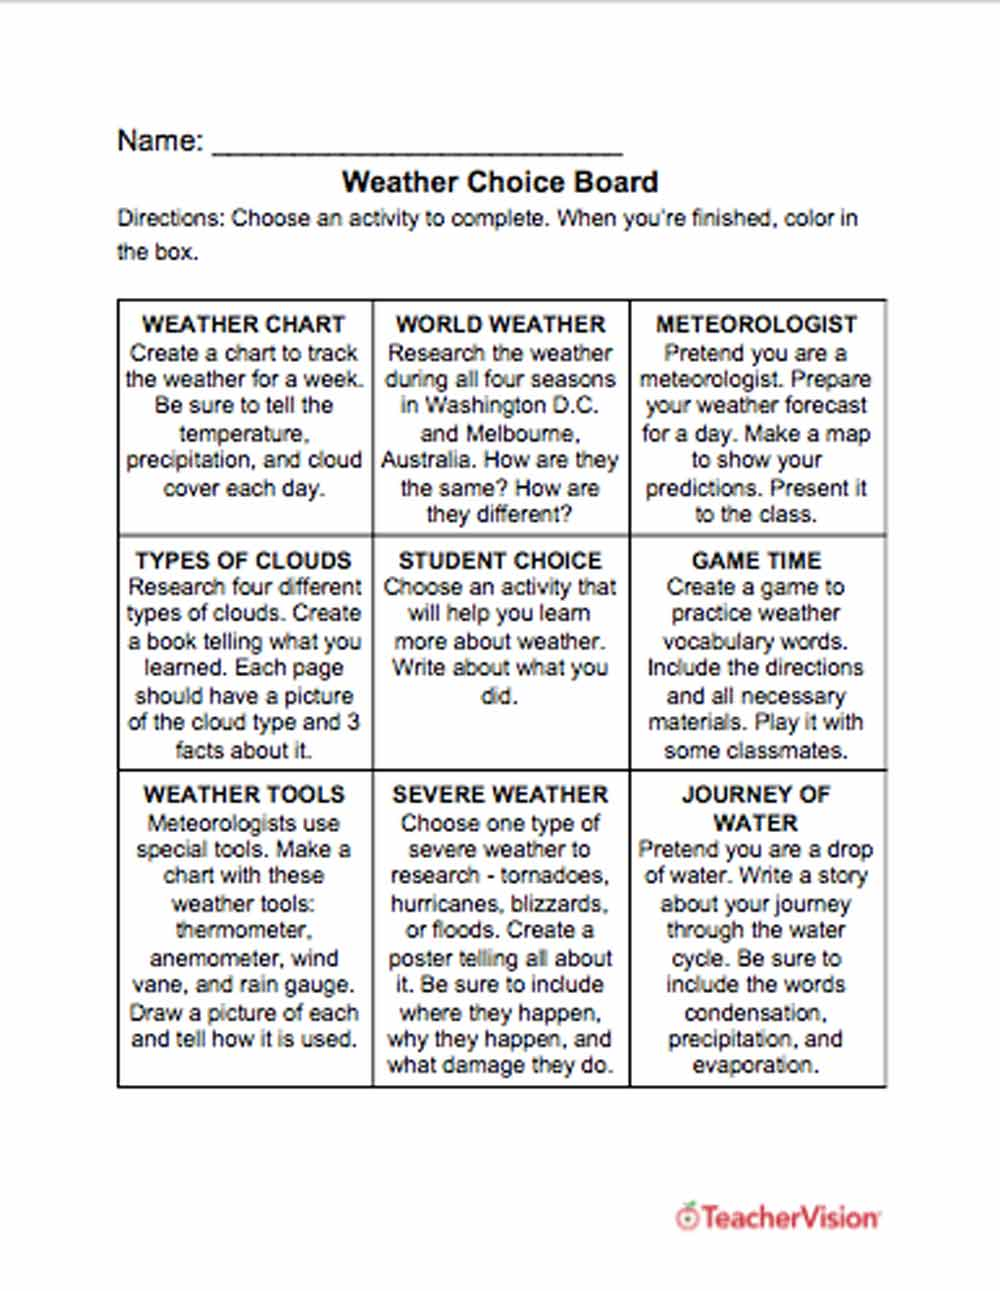 hight resolution of Weather Choice Board - TeacherVision